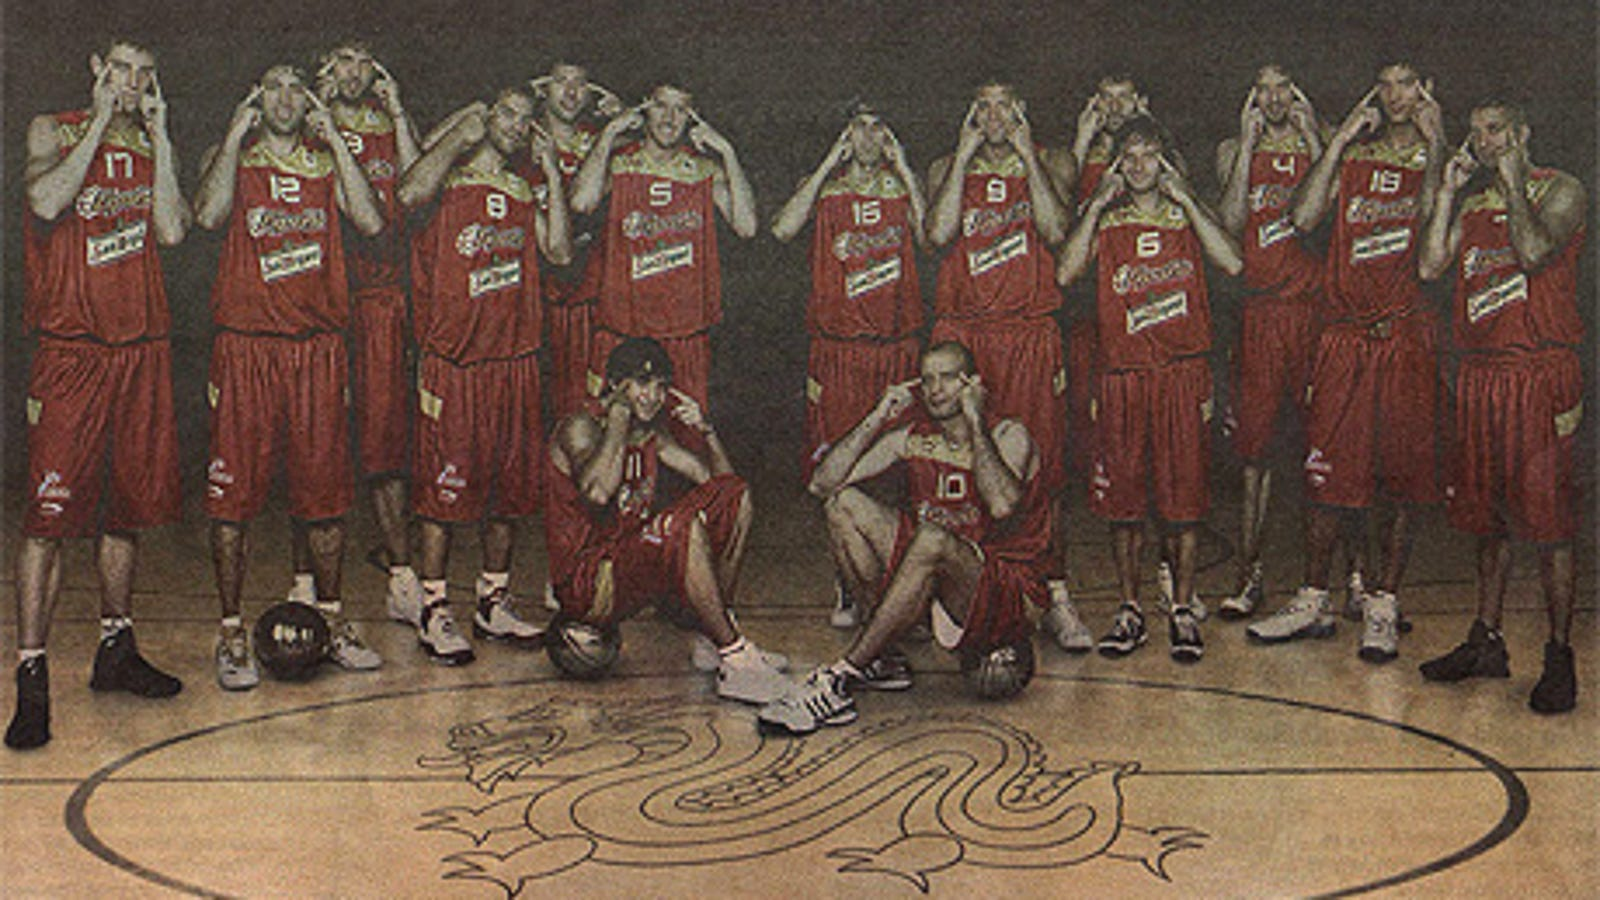 f2b6155d2fe Spanish Basketball Team Celebrates Trip to China With Slant-Eye Team Photo